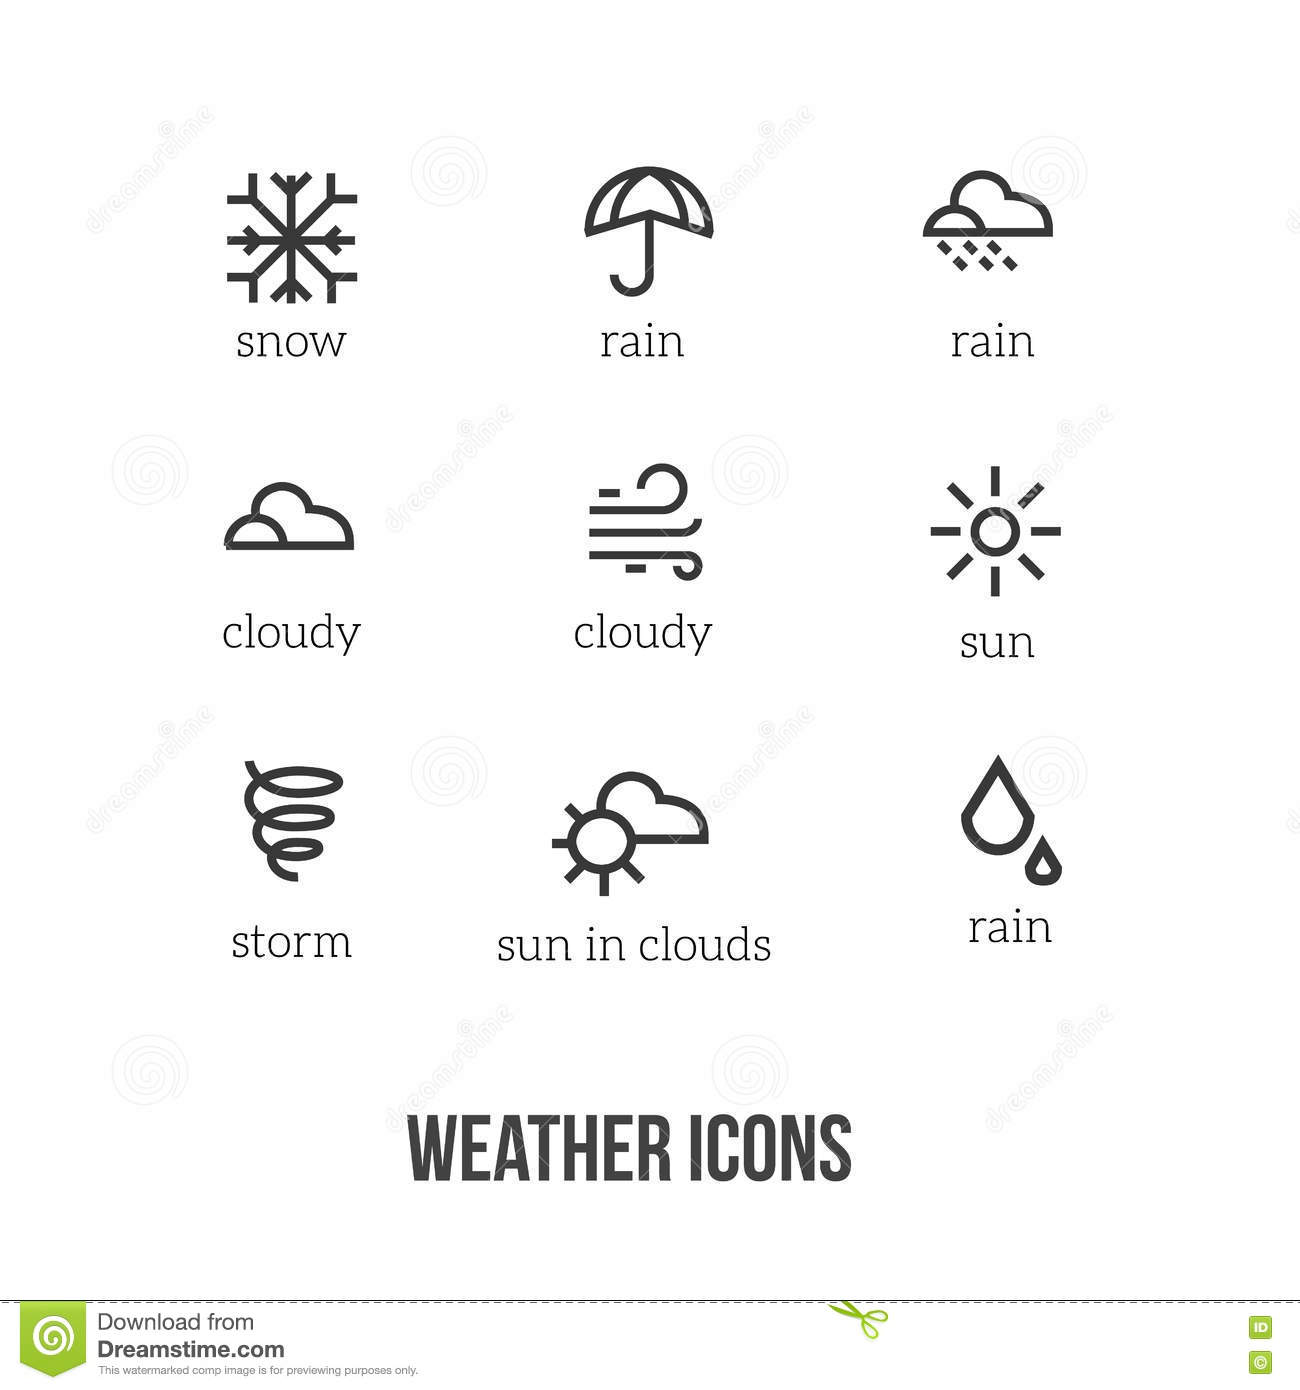 Weather Icons With Main Symbols Of Snow Rain Sun Cloud